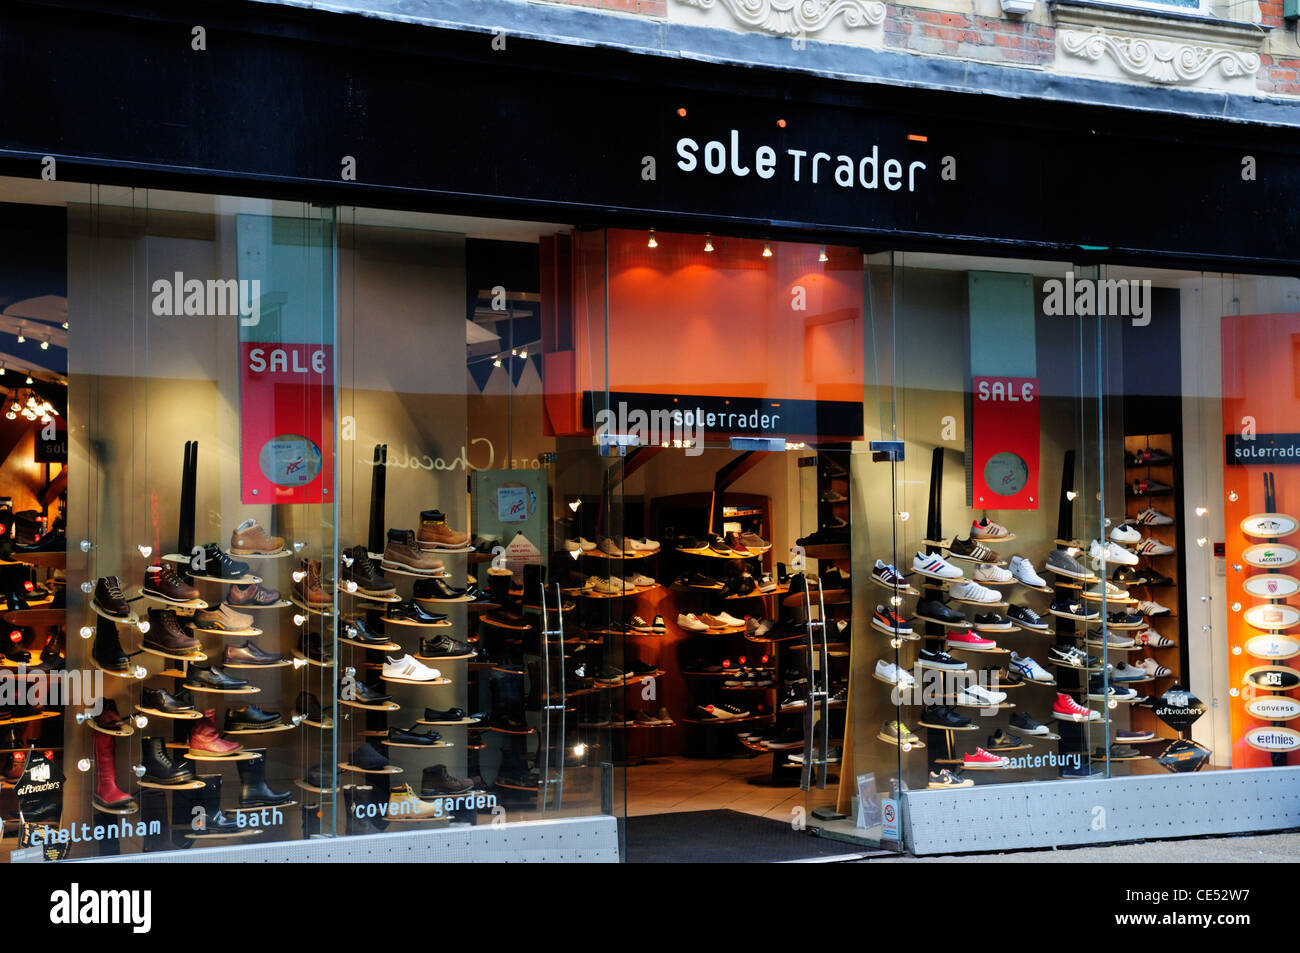 Sole Trader Shoe Shop, Cambridge, England, UK - Stock Image